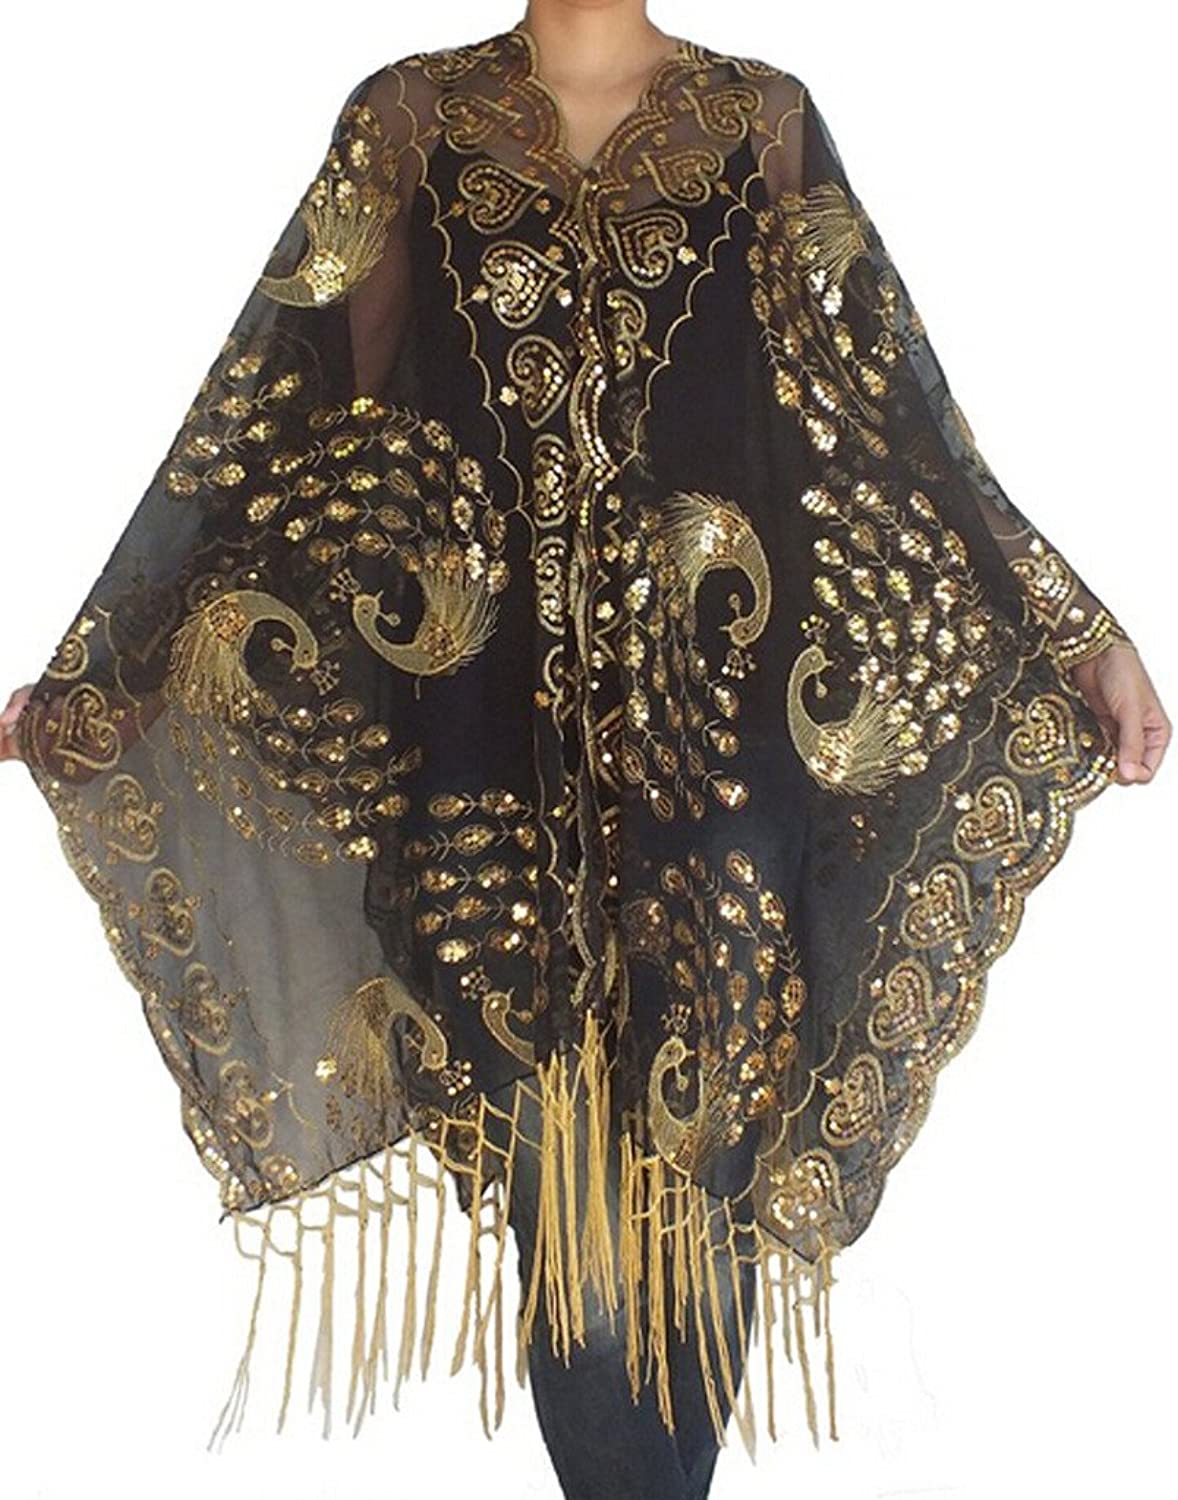 Vintage Scarf Styles -1920s to 1960s  Peacock Phoenix Embroidery Sequins Wedding Scarf Shawls $19.99 AT vintagedancer.com